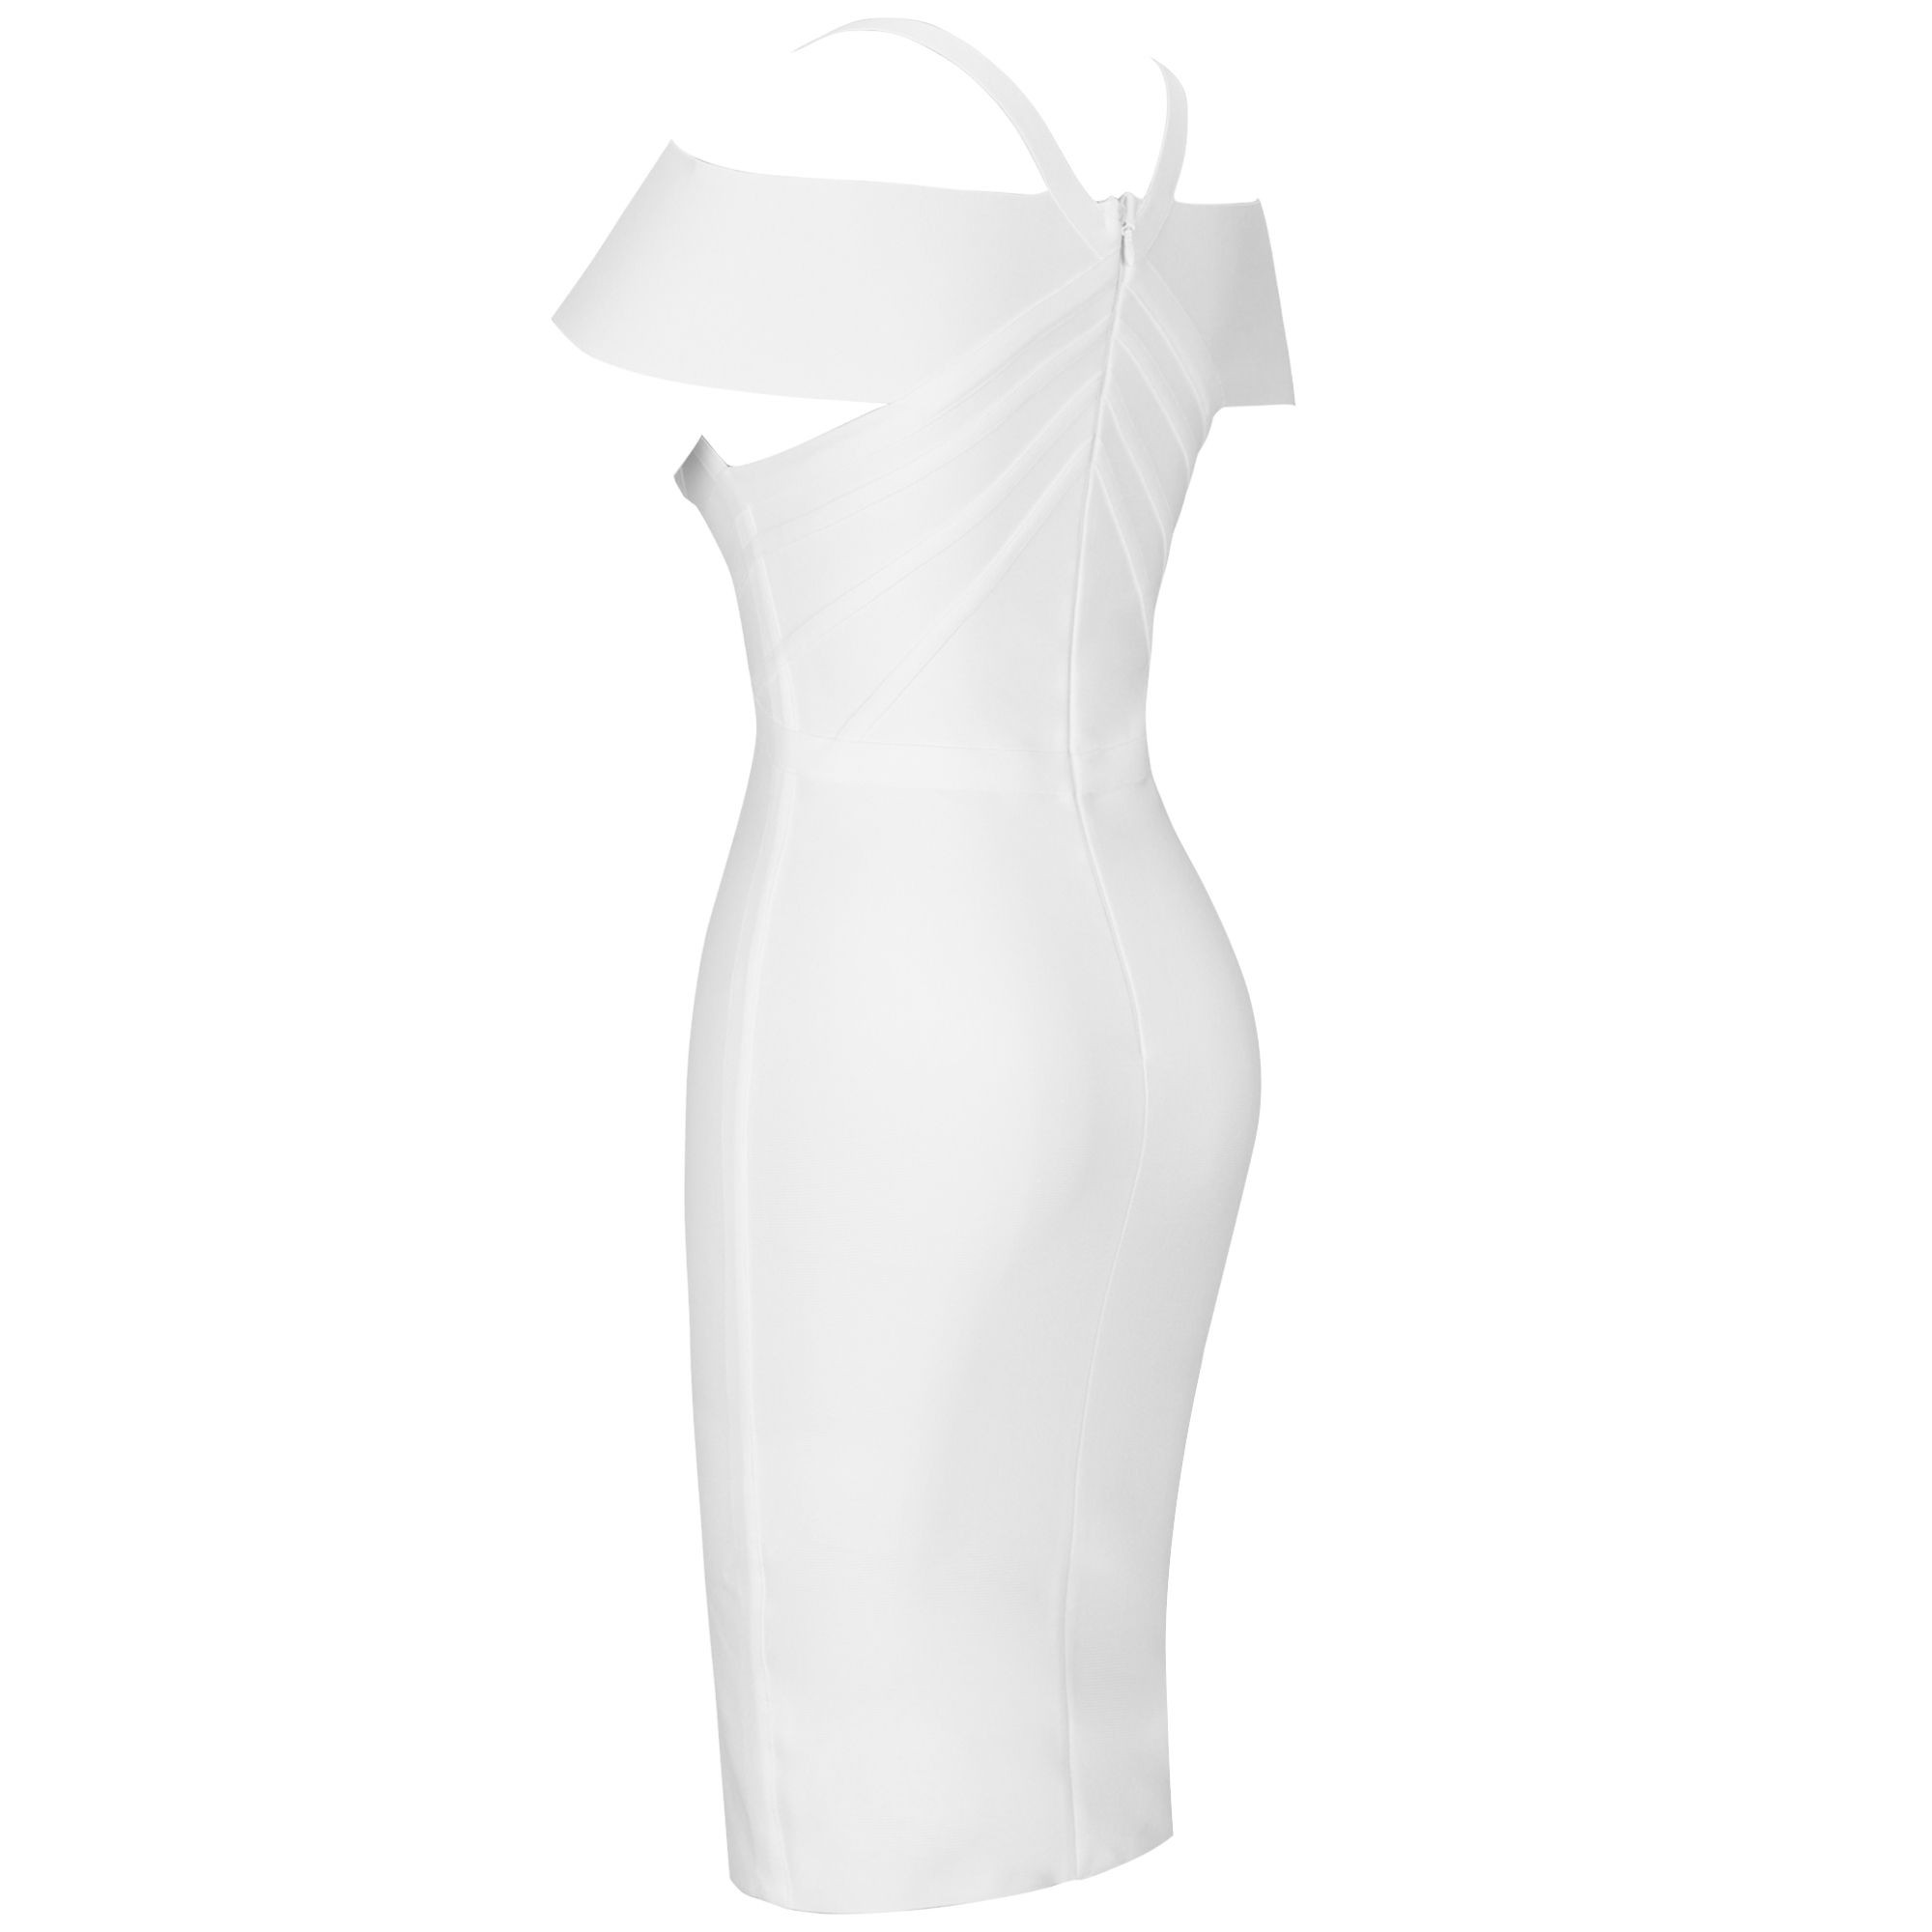 White Striped Over Knee Short Sleeve Strapy Bandage Dress PF19089-White